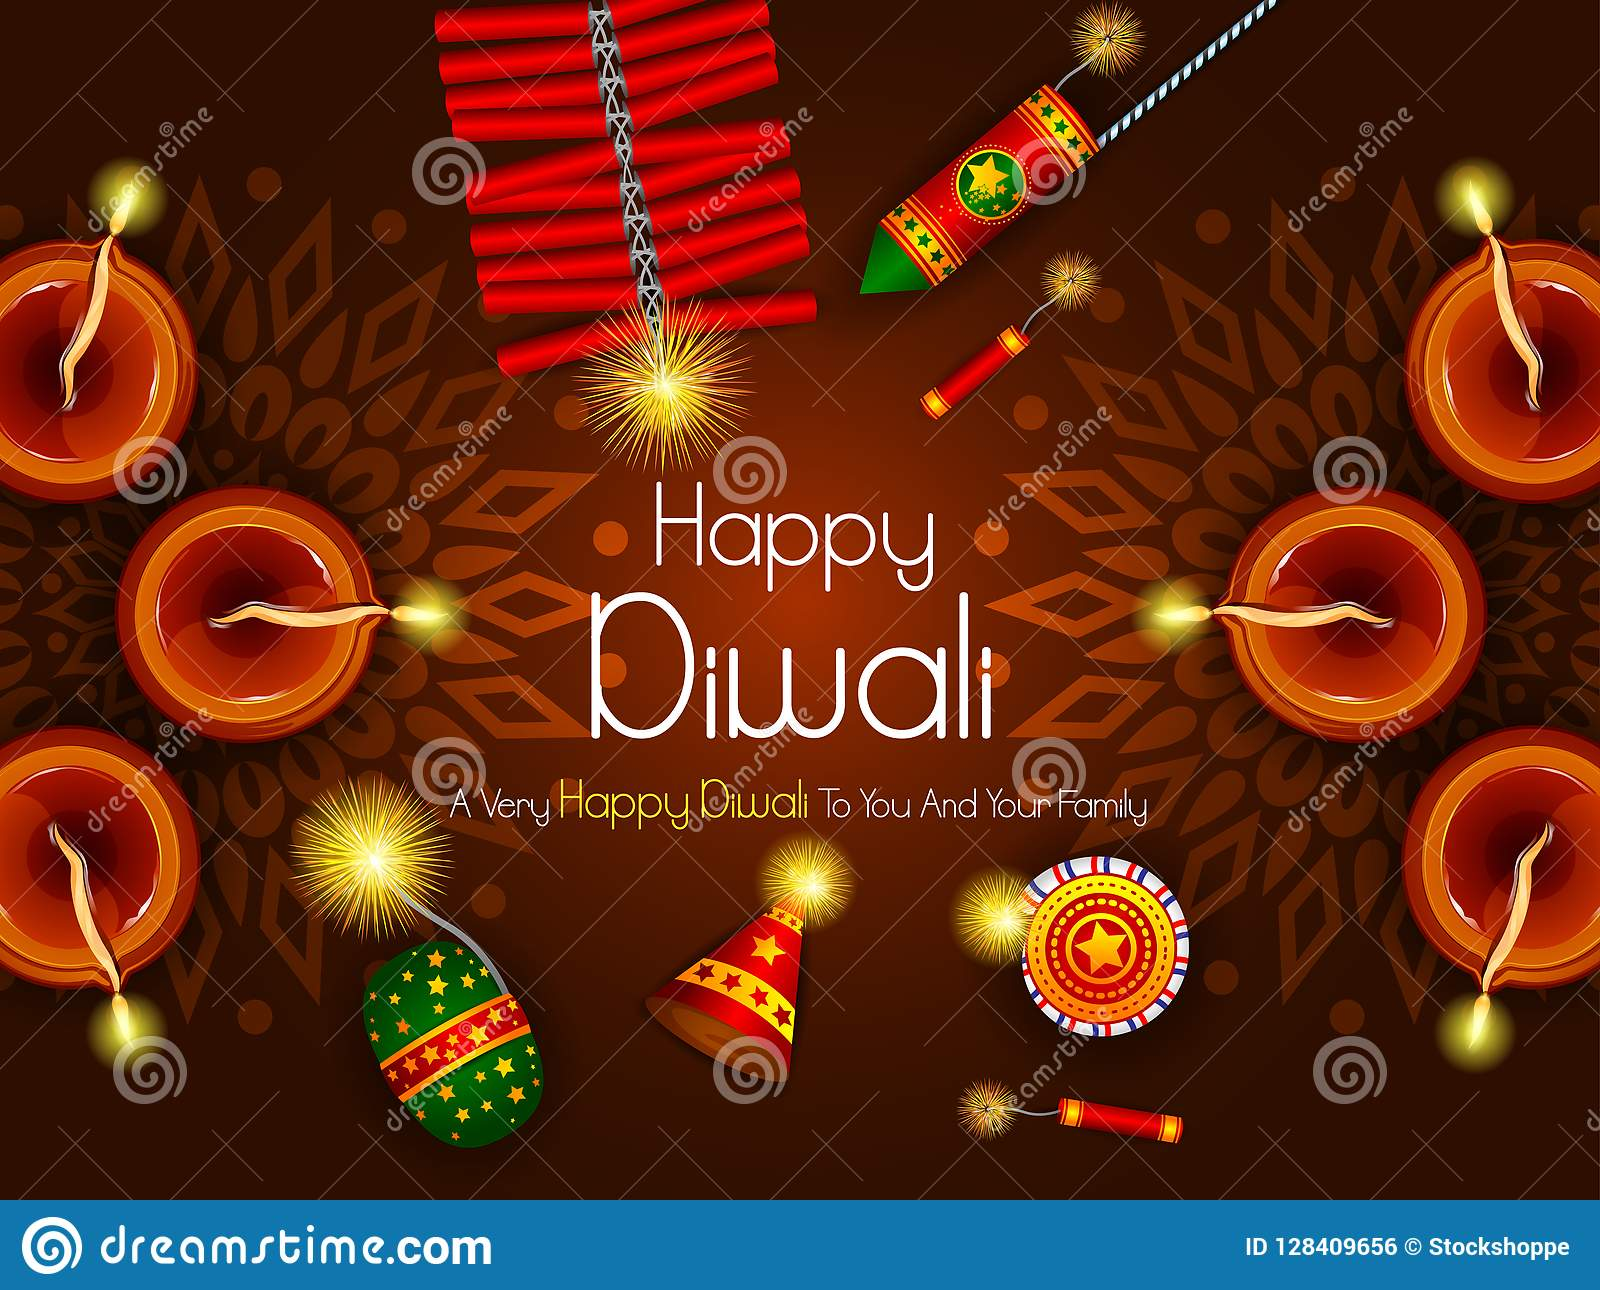 Colorful Fire Cracker With Decorated Diya For Happy Diwali Festival